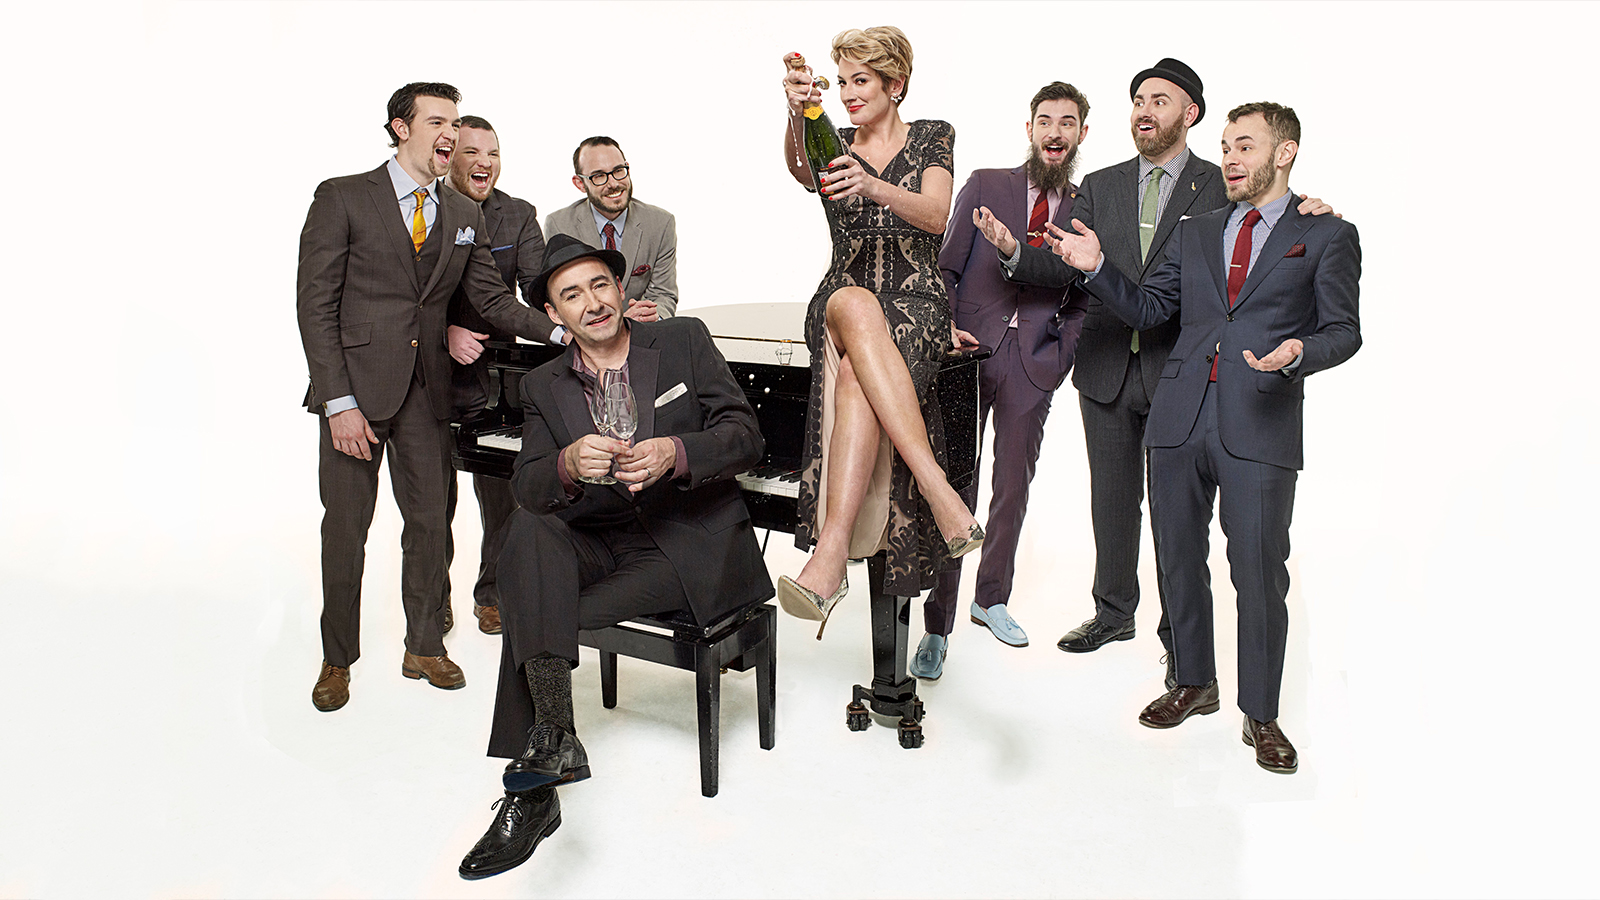 [The Hot Sardines] Photo by Joseph Cultice